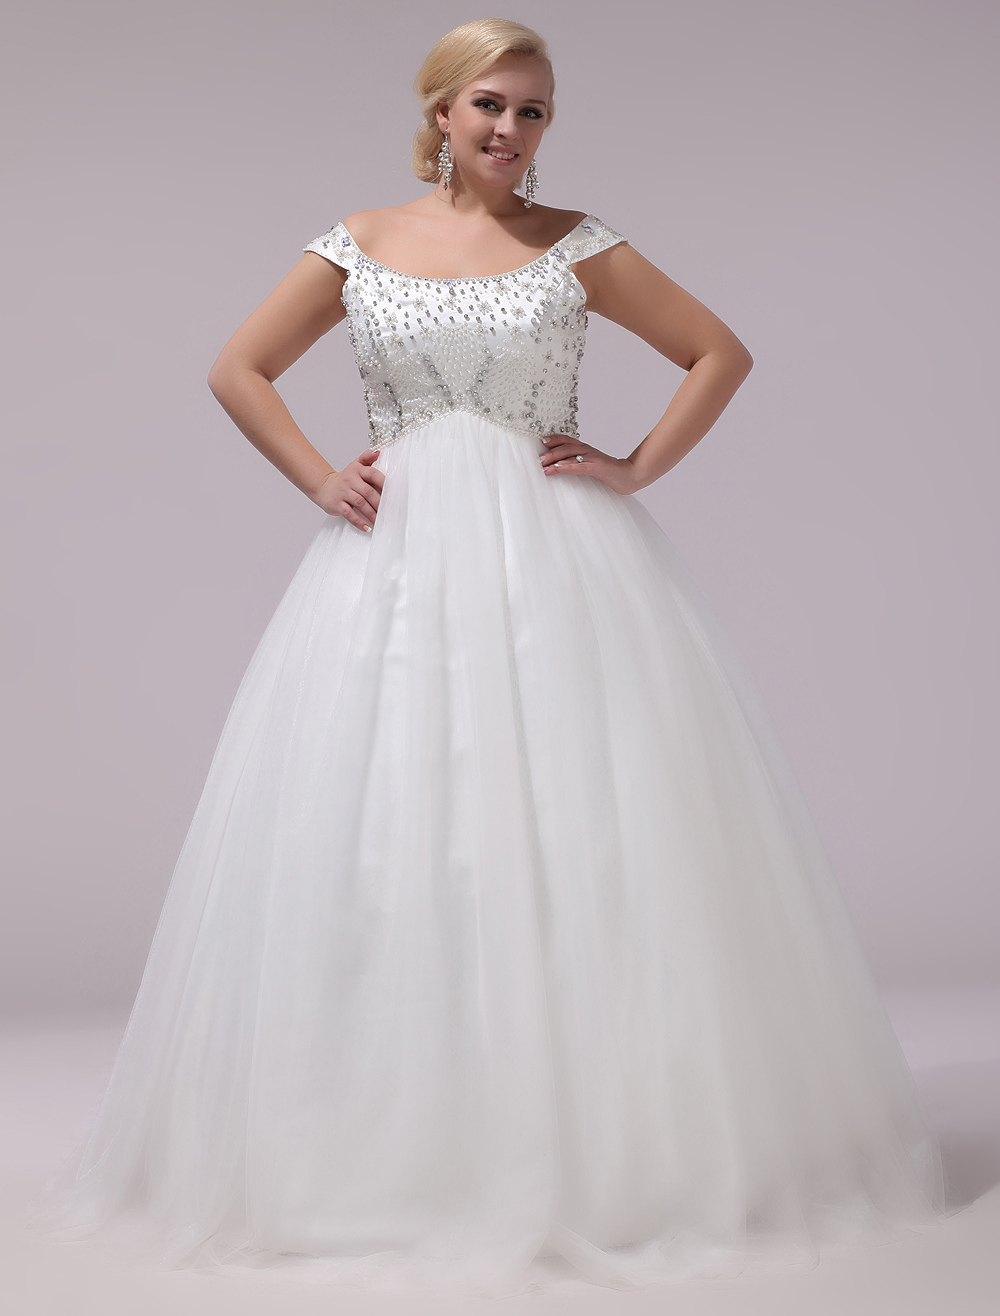 Buy Plus Size Wedding Dresses Tulle Rhinestones Beading Bridal Gown Off The Shoulder Sleeveless A Line Floor Length Bridal Dress Milanoo for $201.59 in Milanoo store